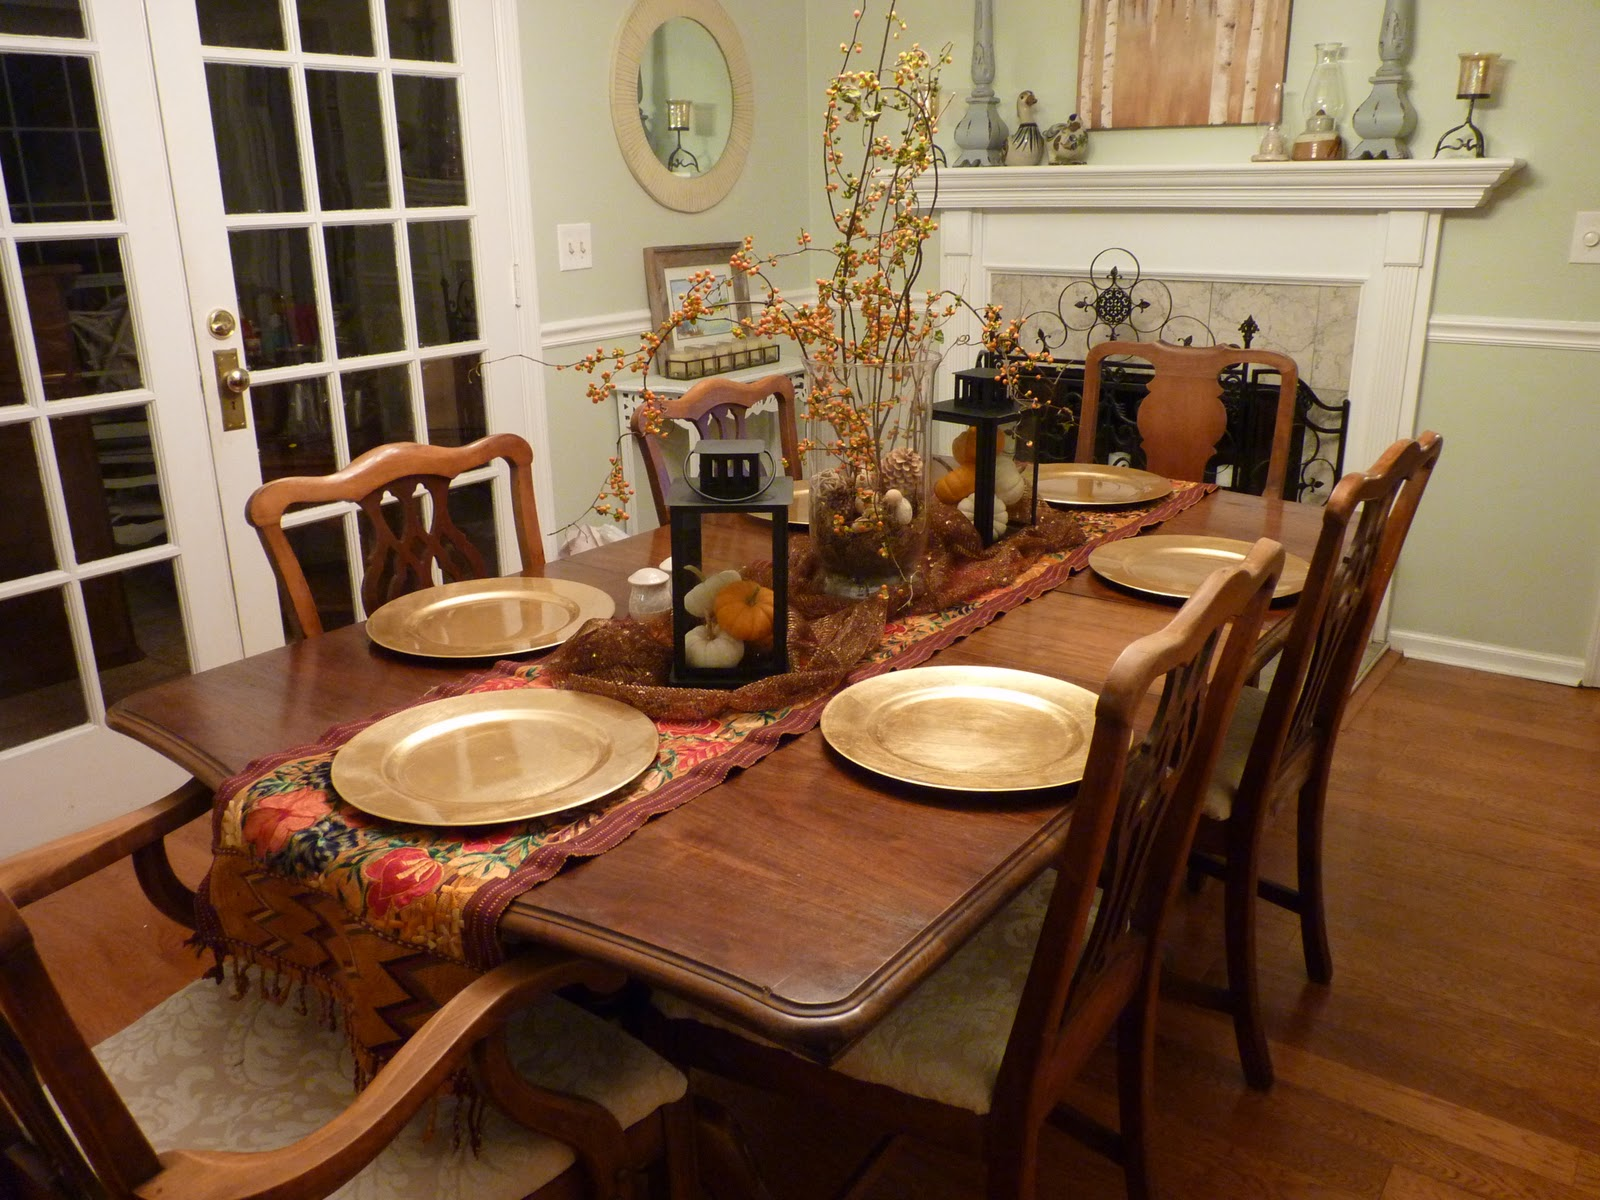 decorating ideas for dining room table photo - 2